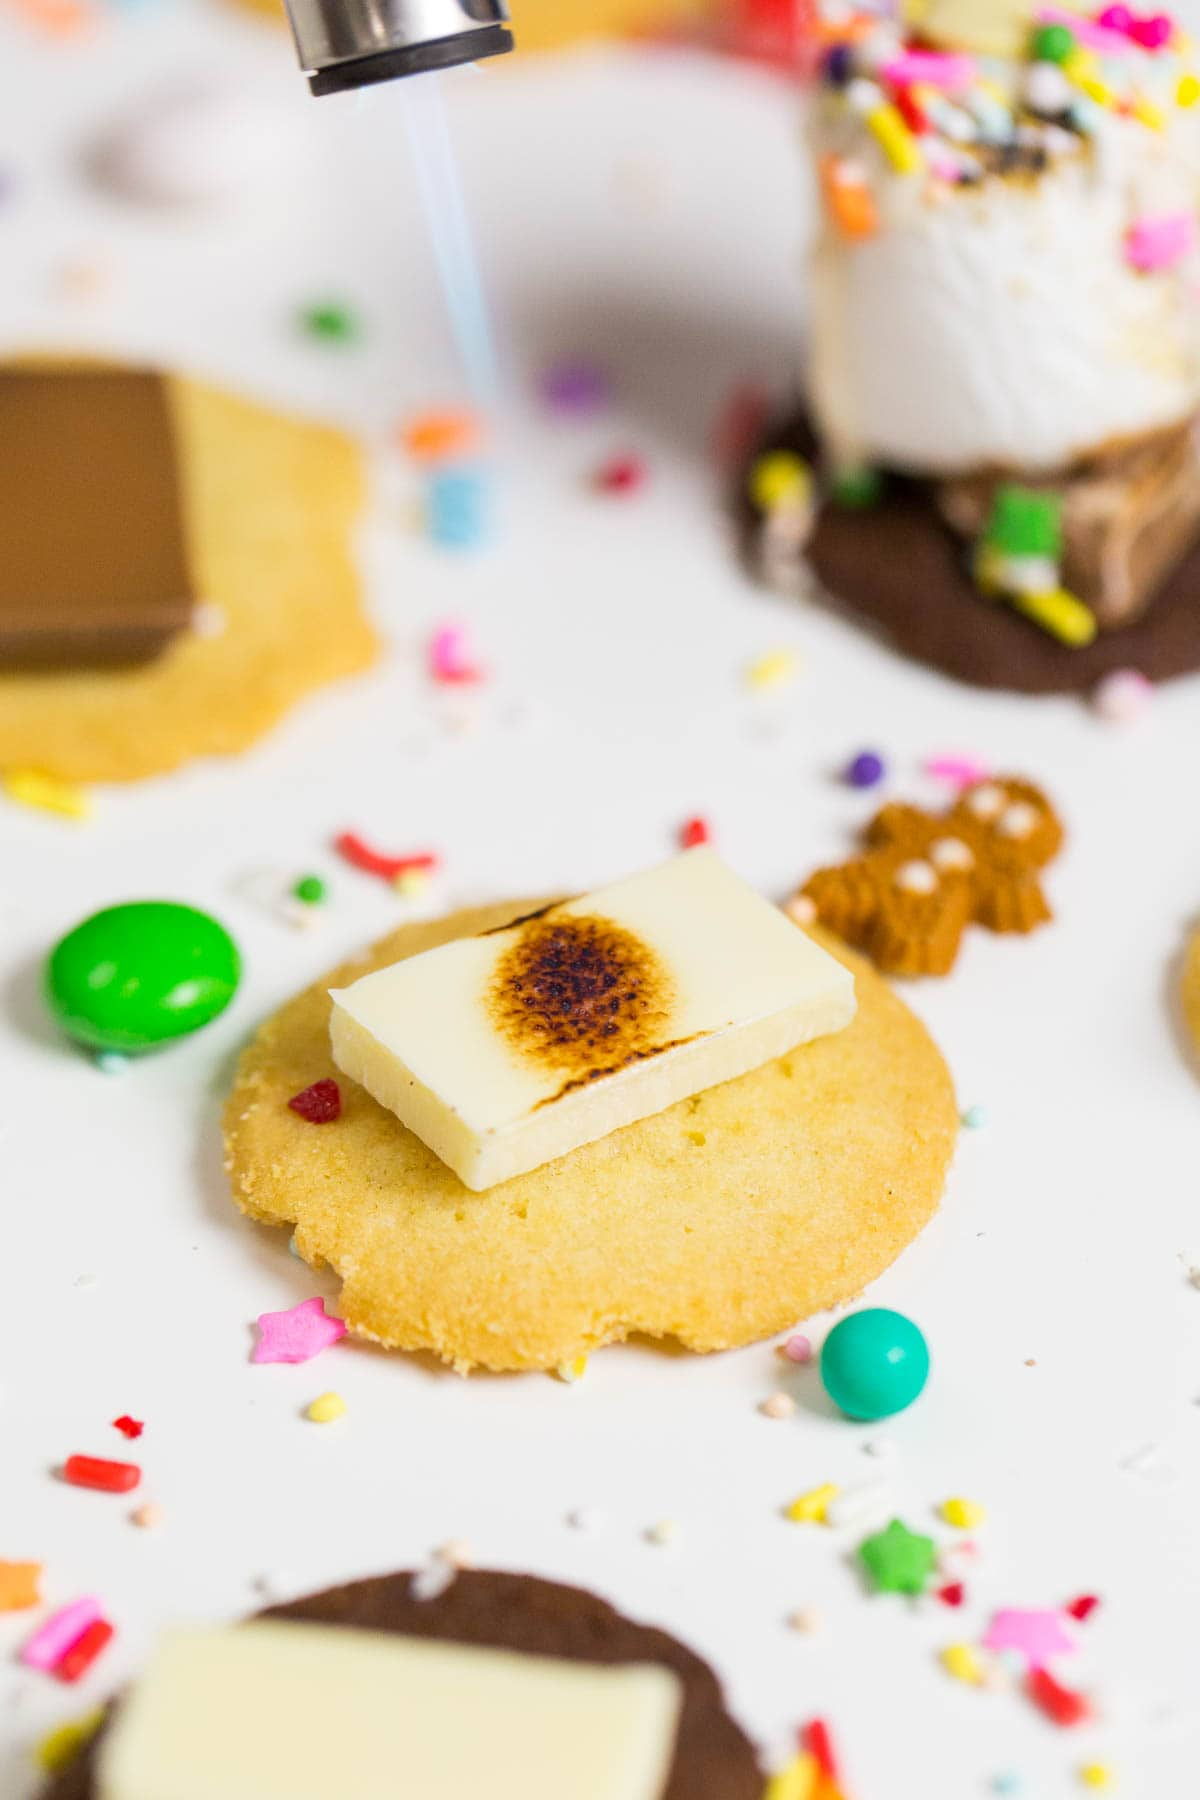 Holiday Cookie and Sprinkle S'mores recipe by Ashley Rose of Sugar and Cloth, and award winning DIY blog.